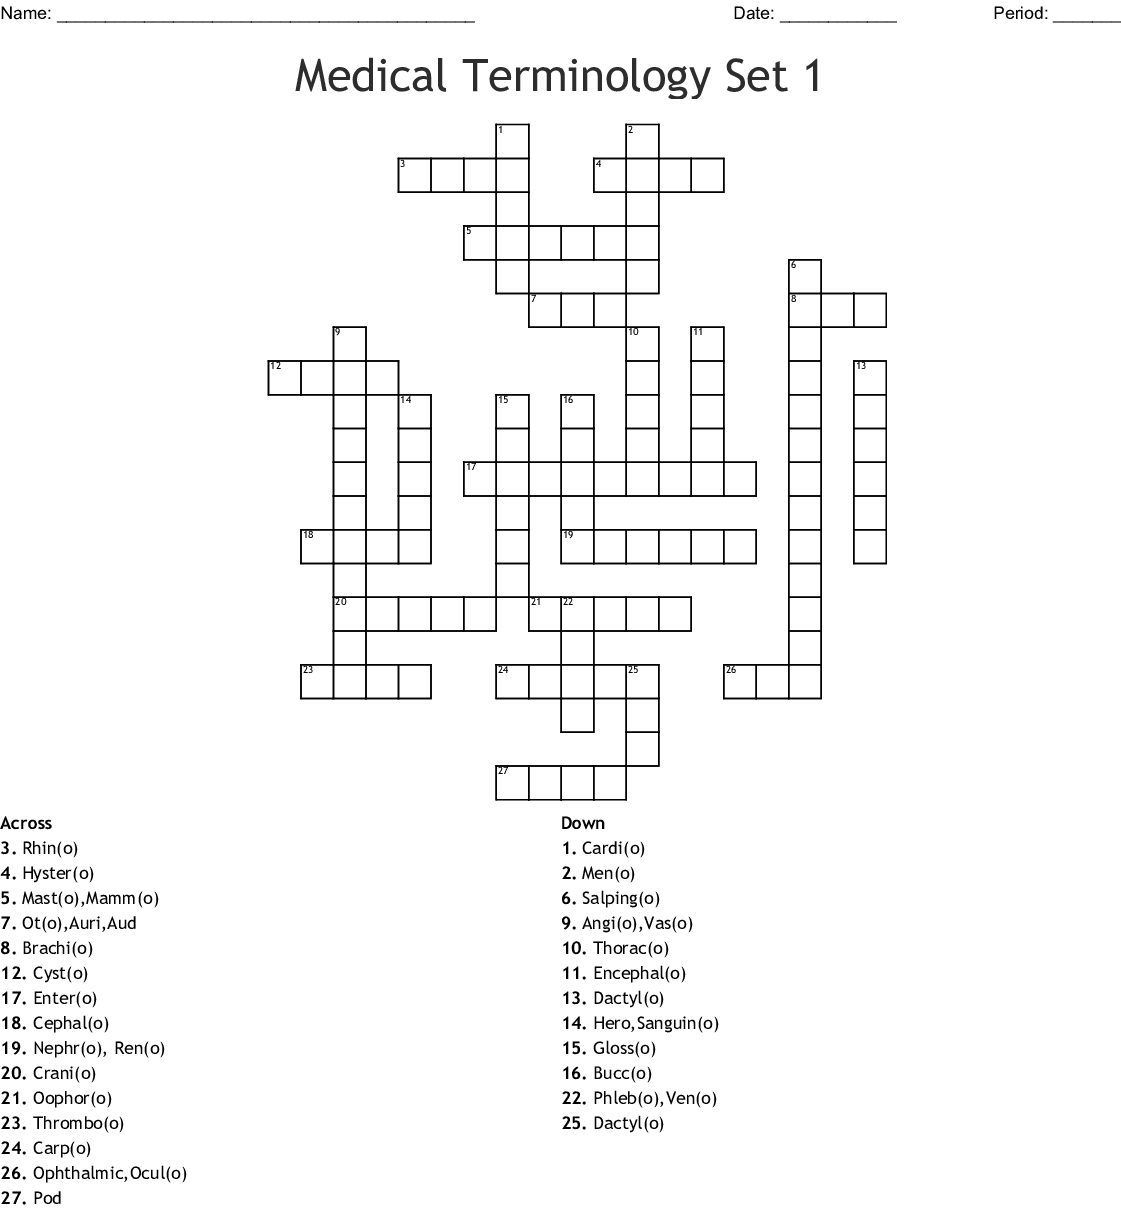 Medical Terminology Set 1 Crossword